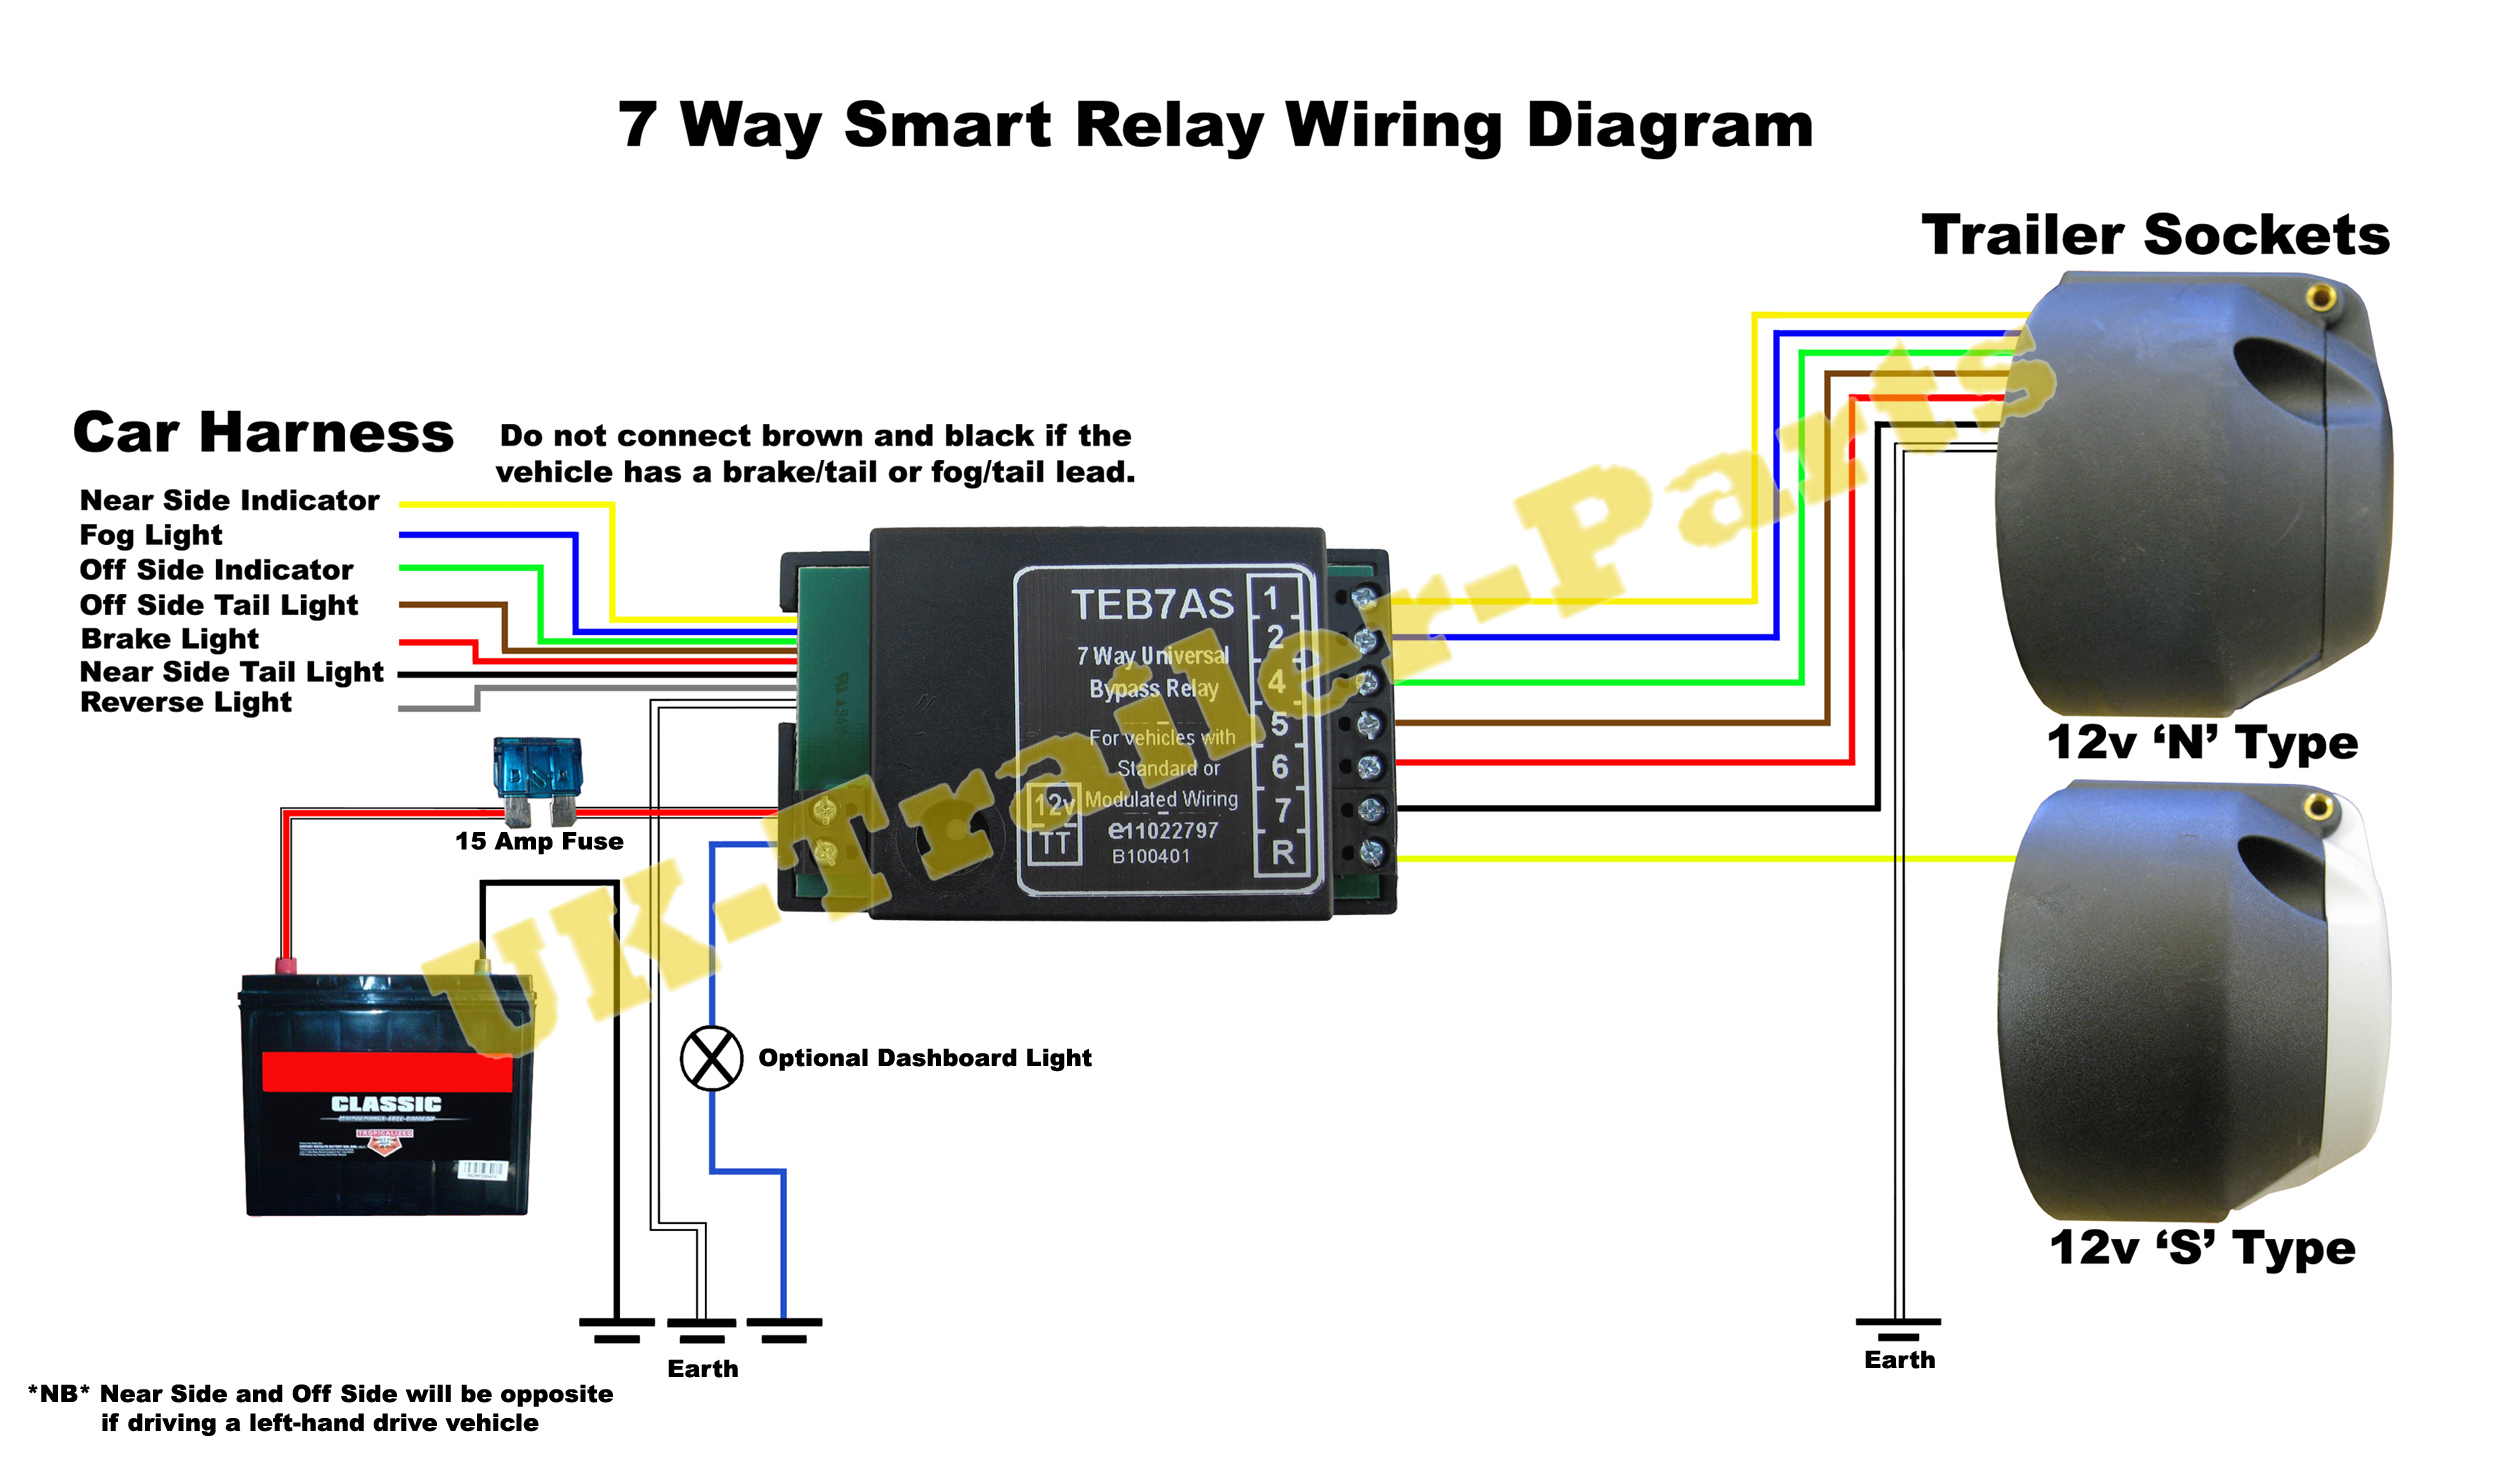 7 Way Universal Bypass Relay Wiring Diagram Uk Trailer Parts Circuit Troubleshooting